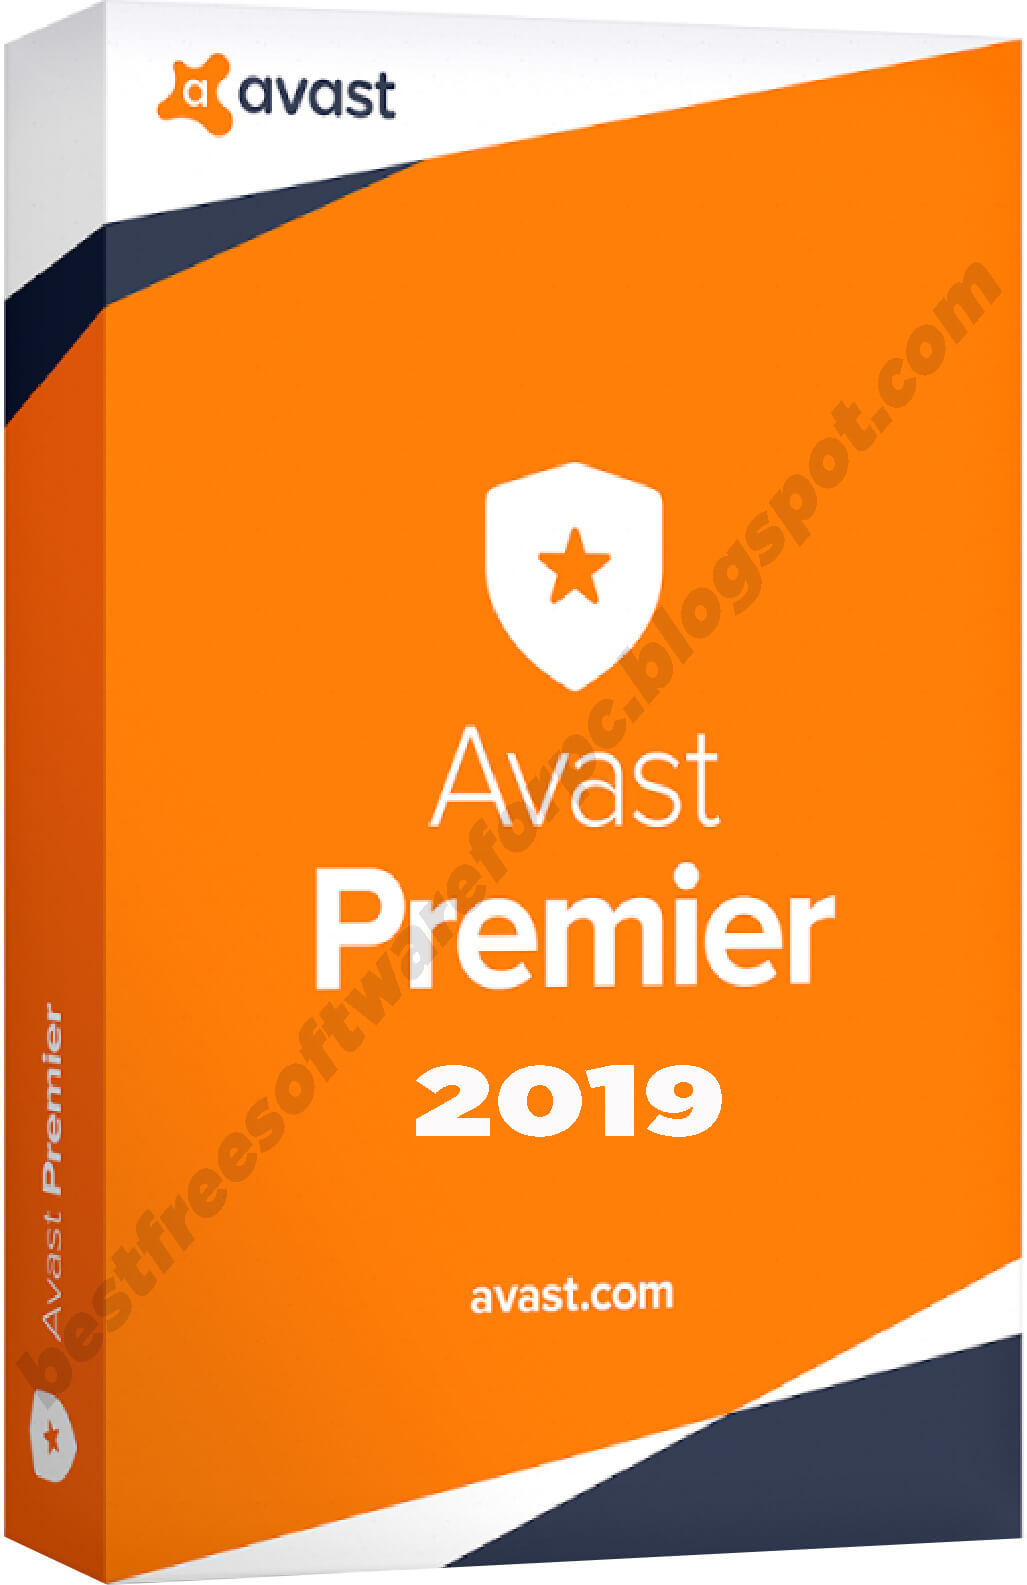 Avast Premier 2019 Crack + License Key Free Download ...